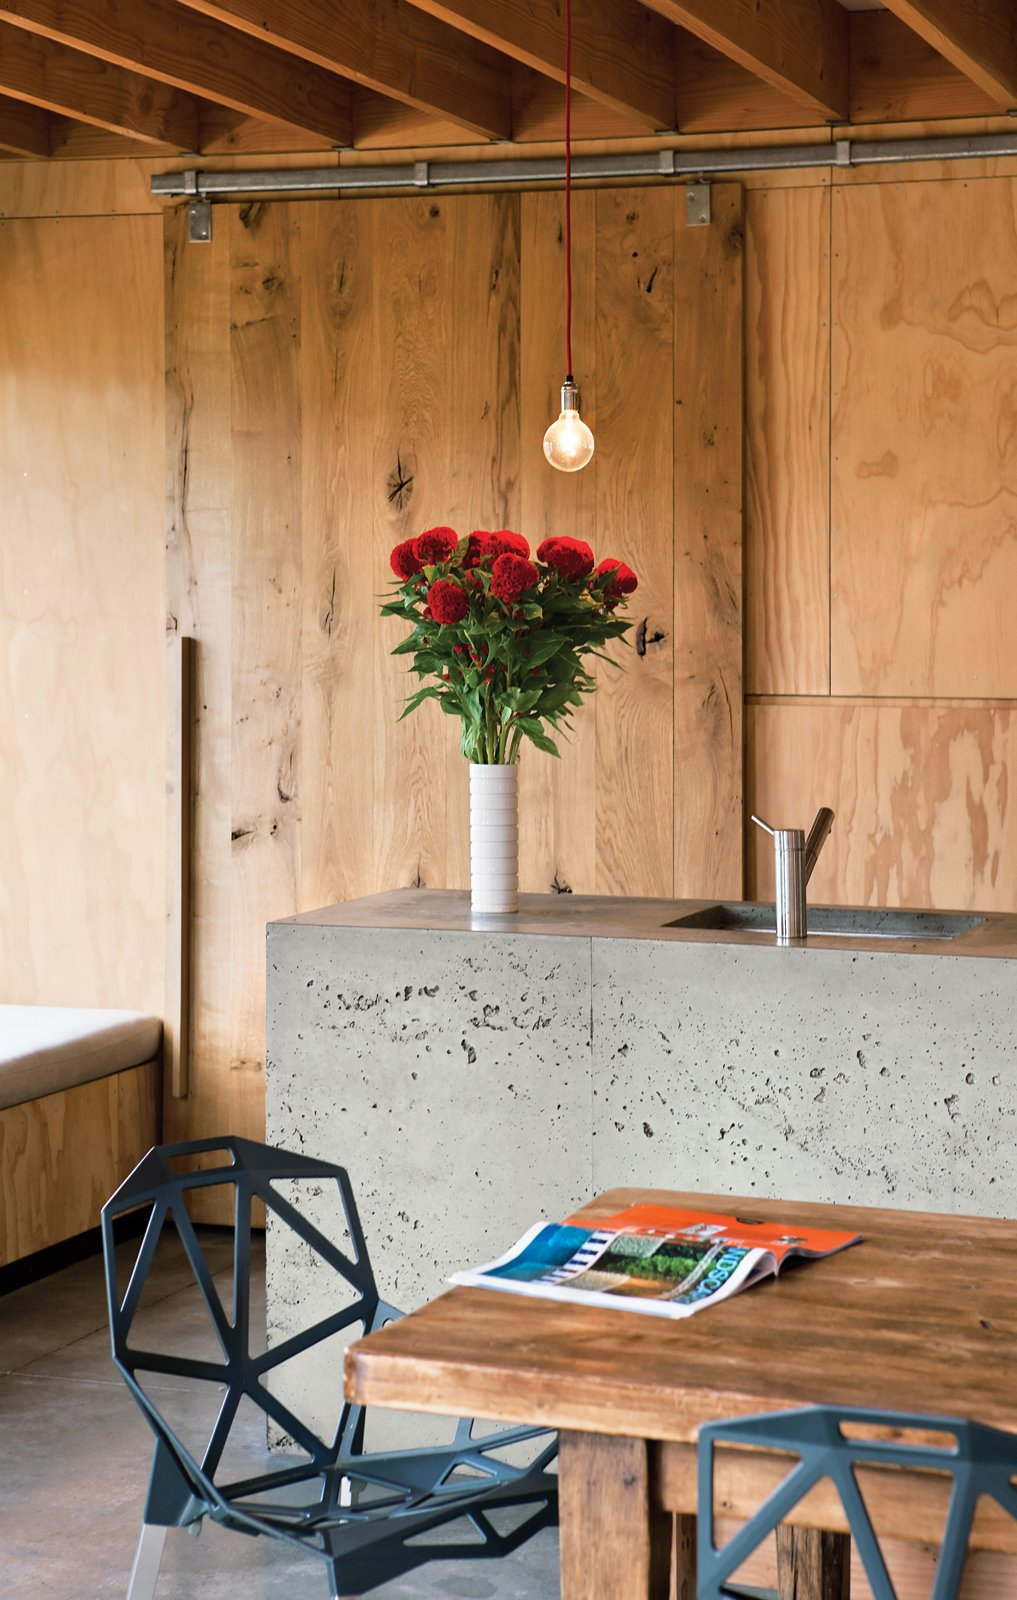 Kitchen, Concrete Counter, Pendant Lighting, Concrete Floor, Wood Cabinet, Wood Backsplashe, and Undermount Sink Island Life  The appealing, handcrafted appearance of the concrete kitchen island is a happy accident, the result of the concrete not settling fully in its timber framing. When the framing was   removed, the builder, Peter Davidson, was worried that Davor and Abbe would be disappointed with the bubbled result and offered to start the process again, but they loved its one-off feeling and persuaded him to keep it that way.  Photo 3 of 20 in How to Recognize Different Wood Species: A Guide to the 10 Most Common Types from Rock the Boat